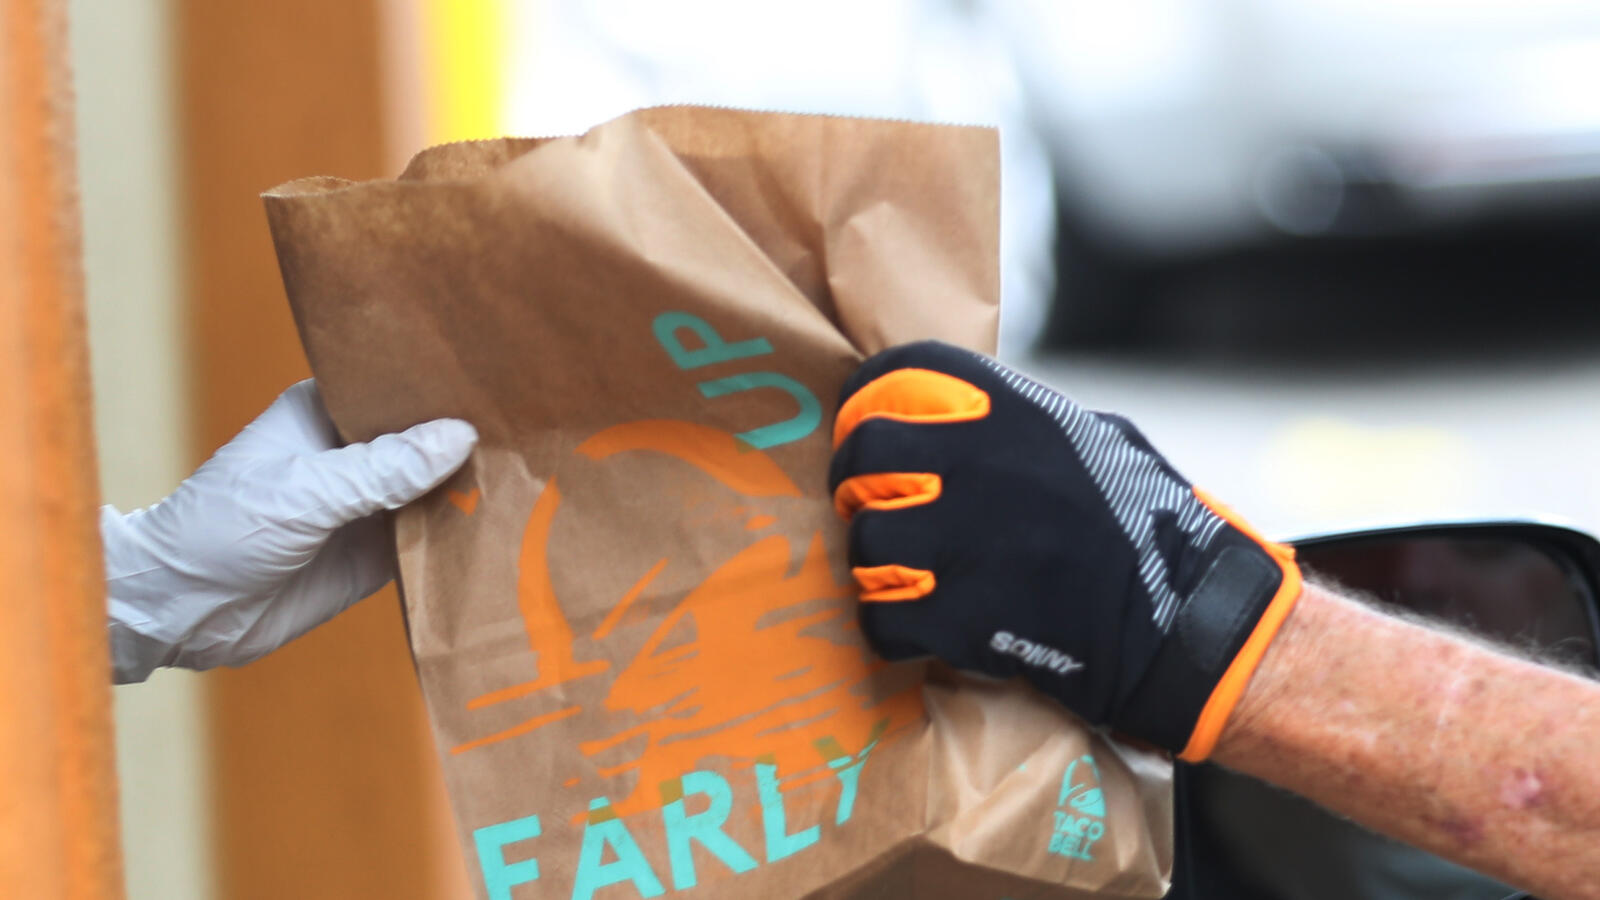 Will you be eating fast food after watching this?